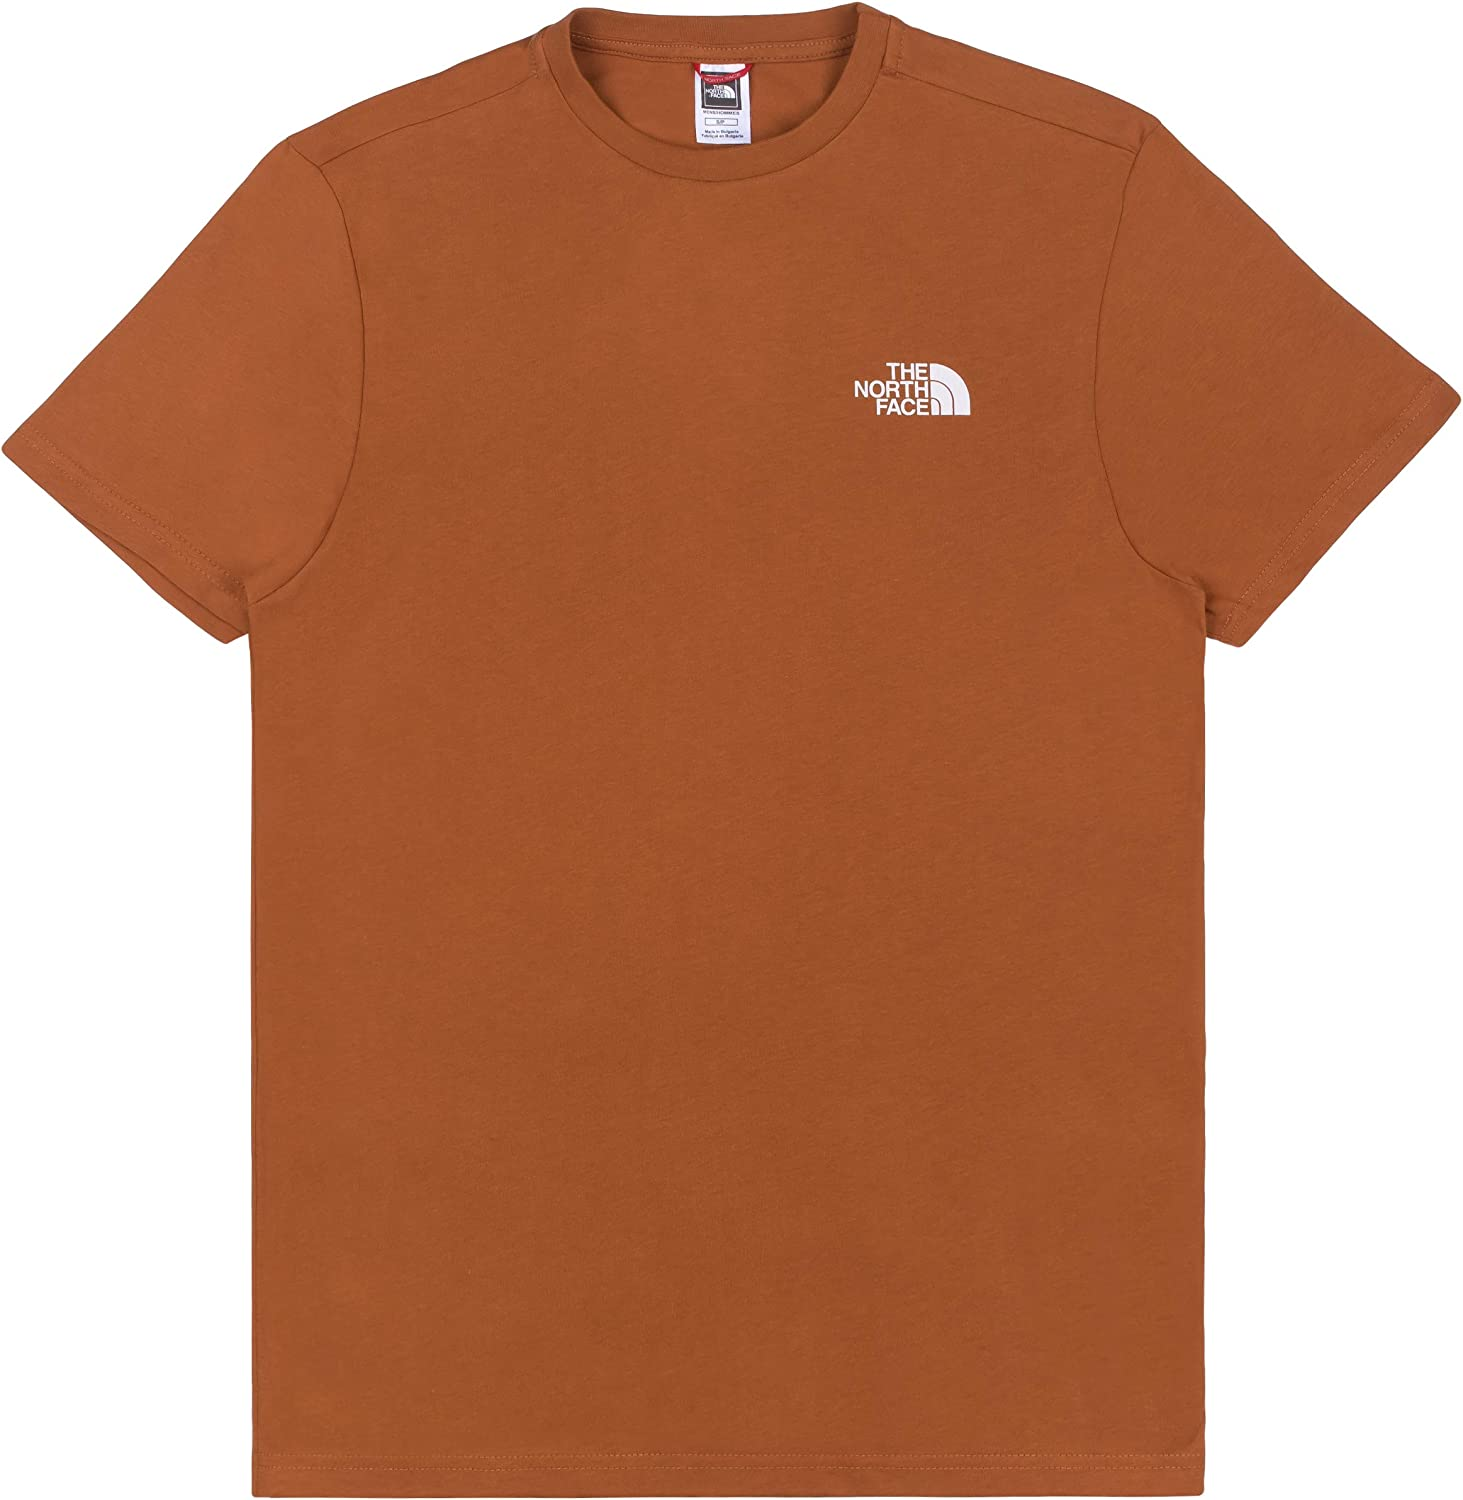 The North Face MS/S Simple Dome Te Caramel Cafe tee Hombre